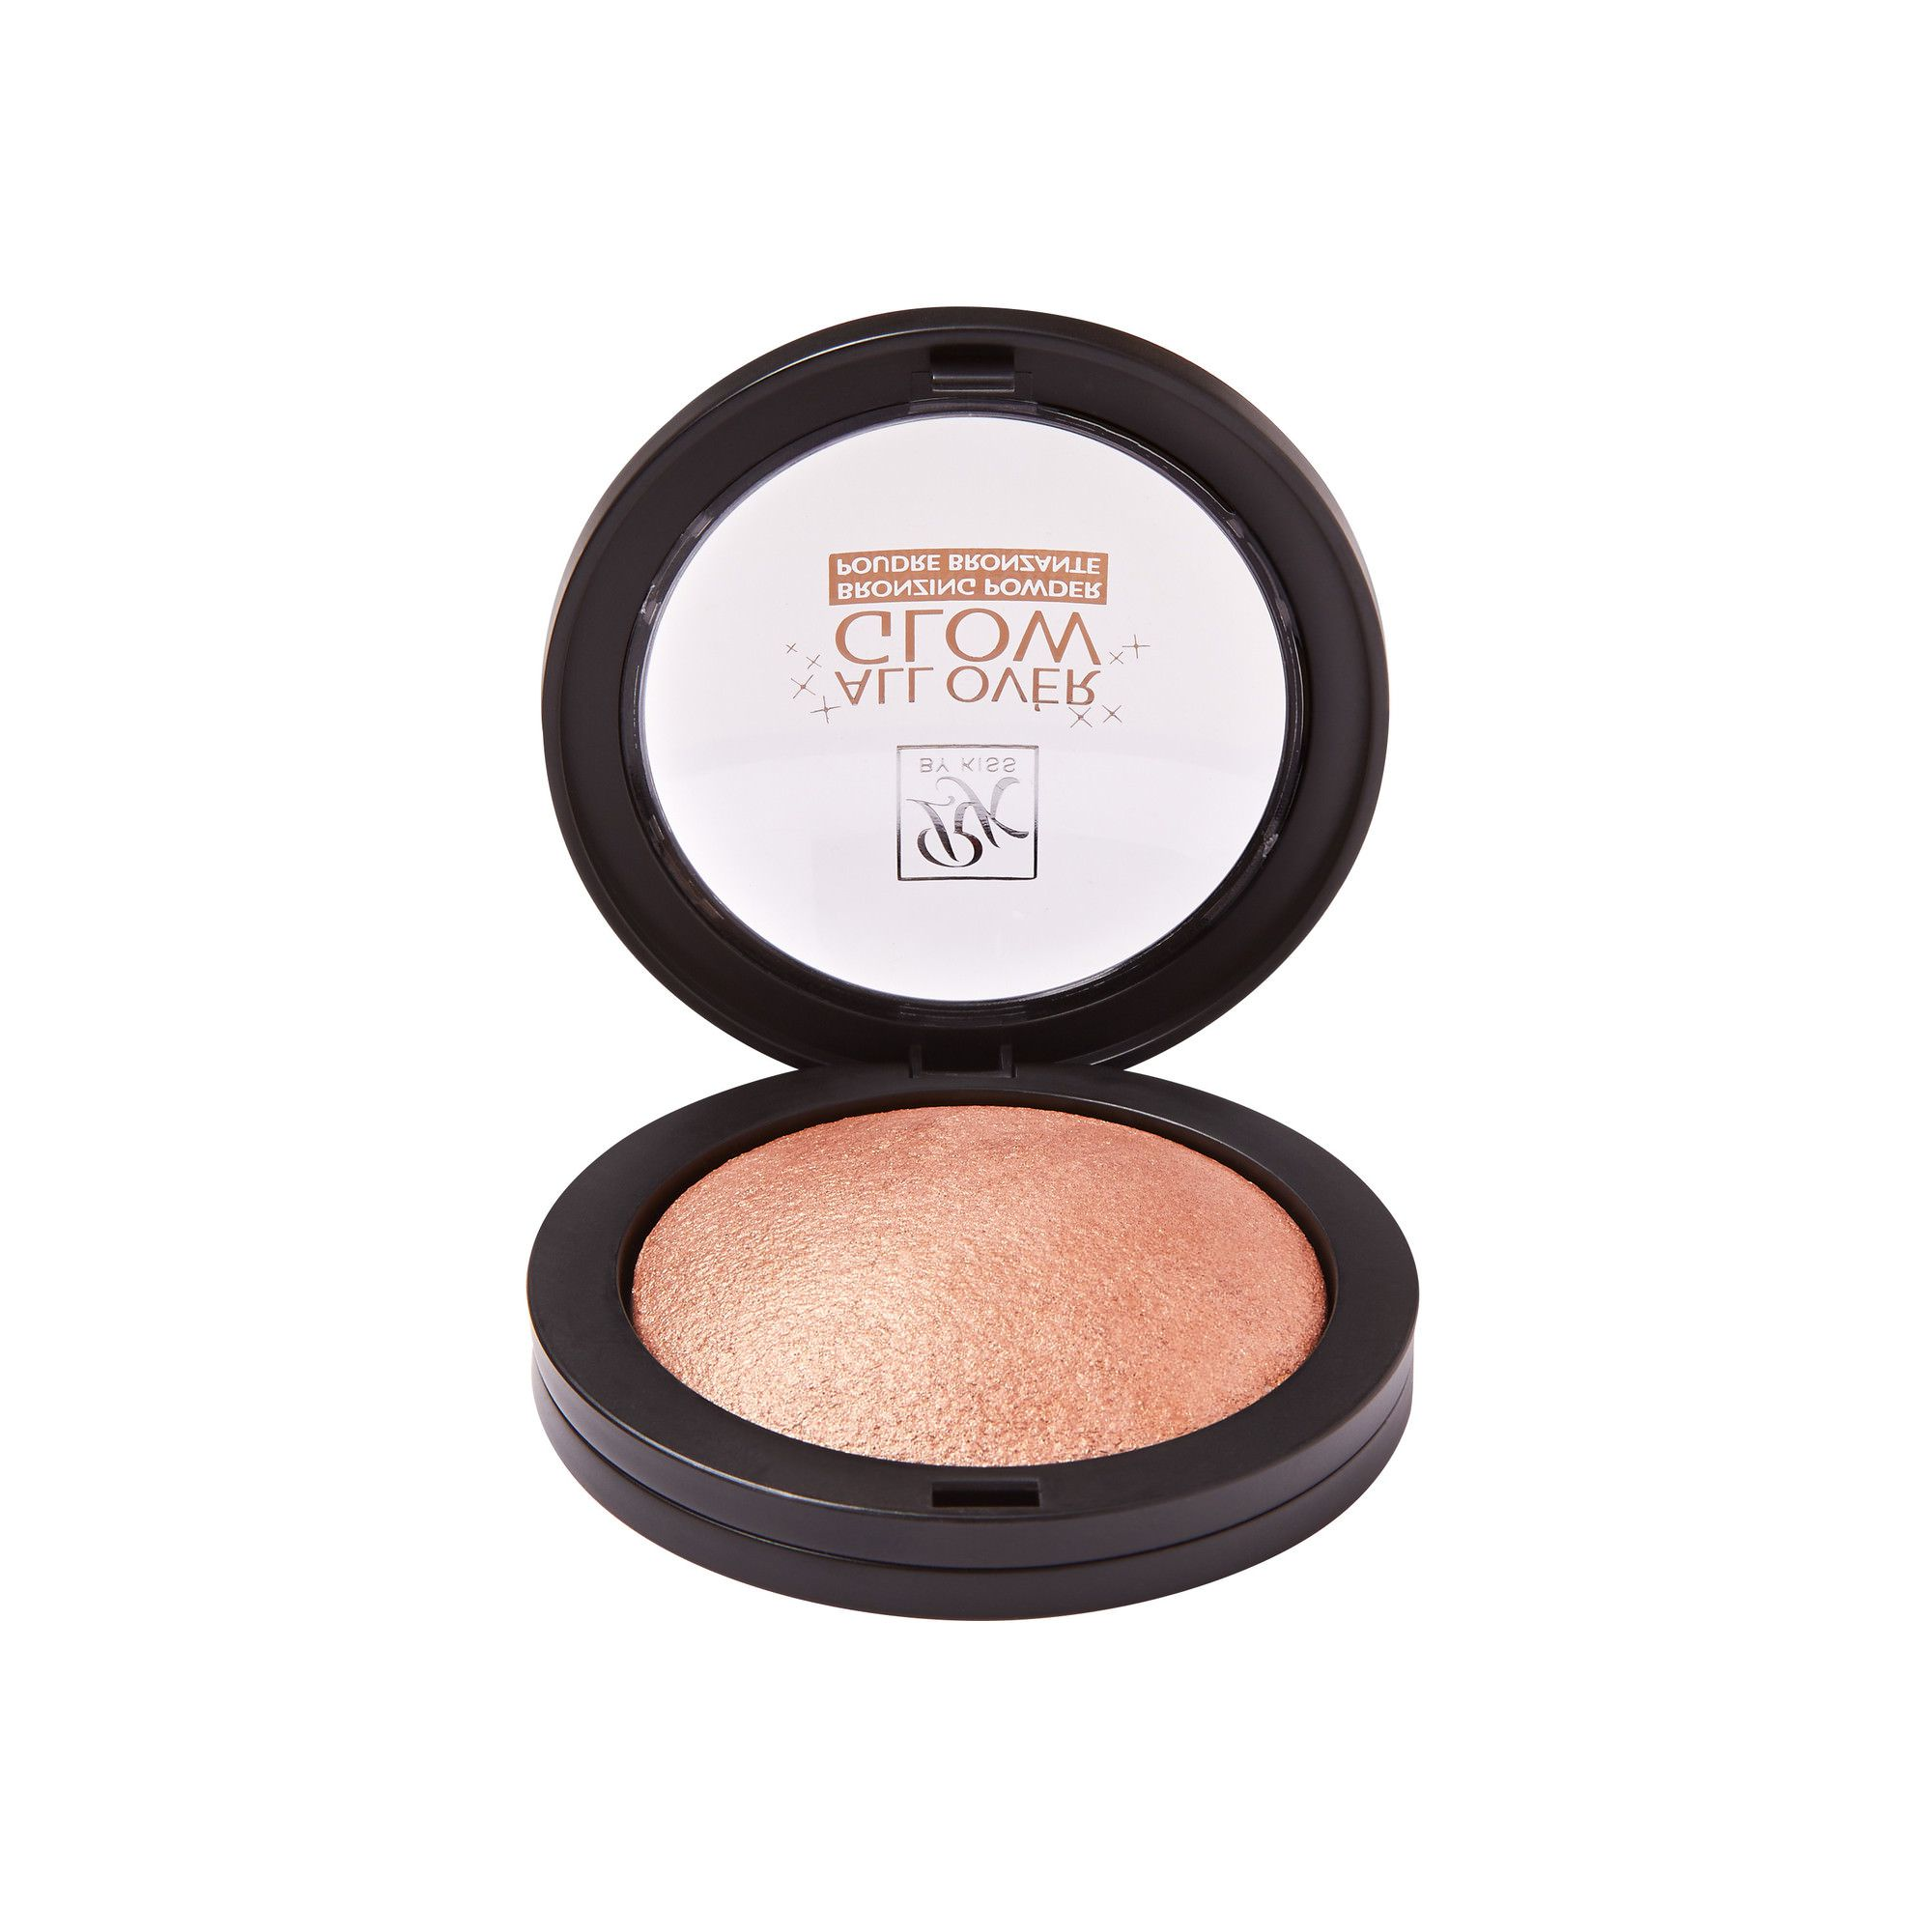 Pó Bronzeador Allover Glow Cor Bronzed Glow11,6g - RK By Kiss